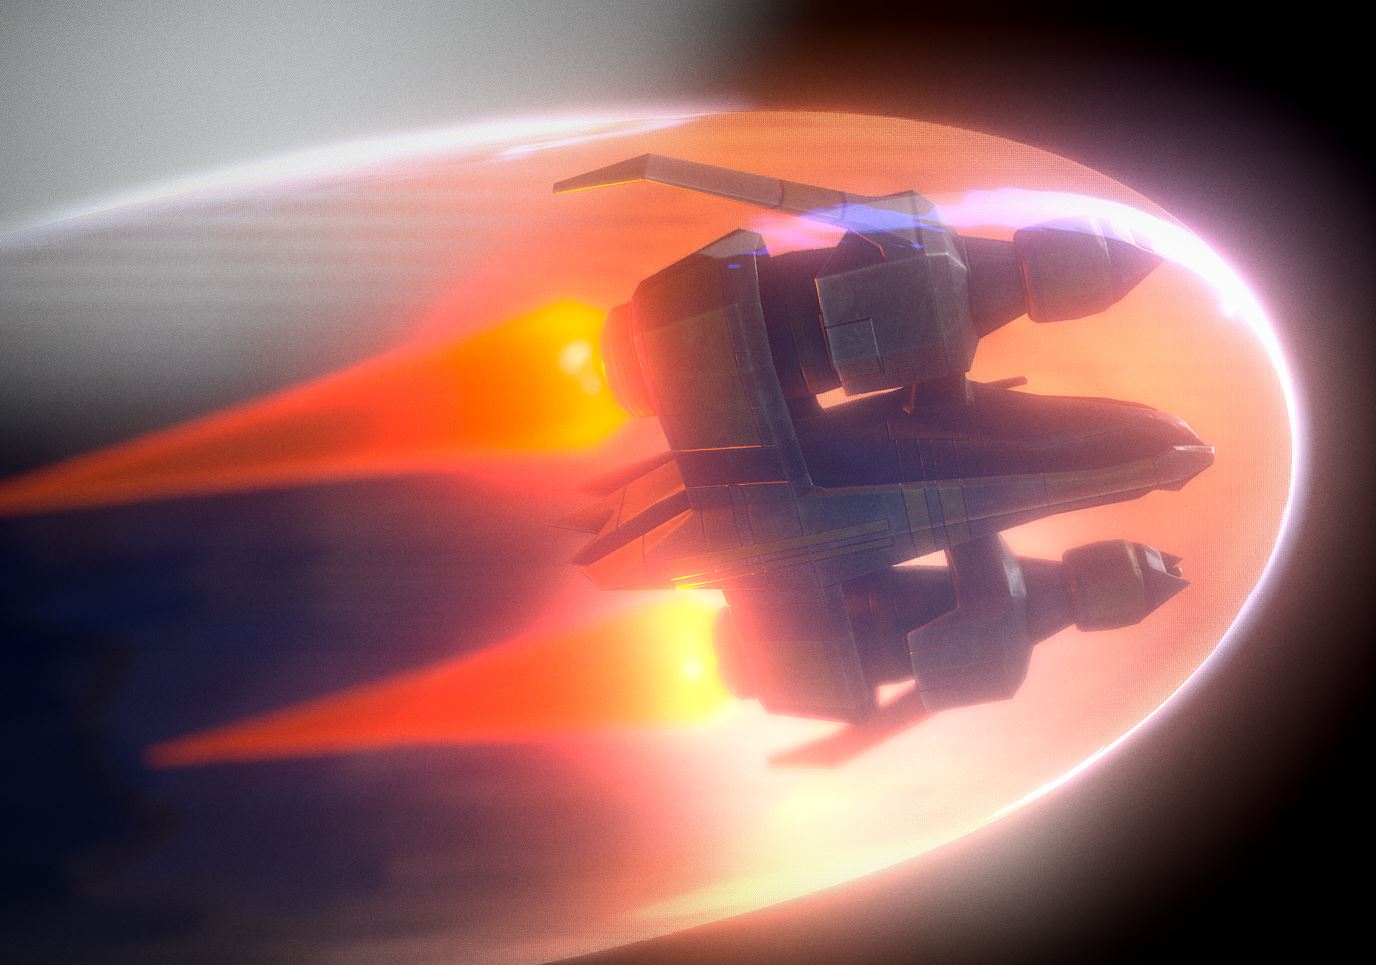 Star Fighter Spaceship